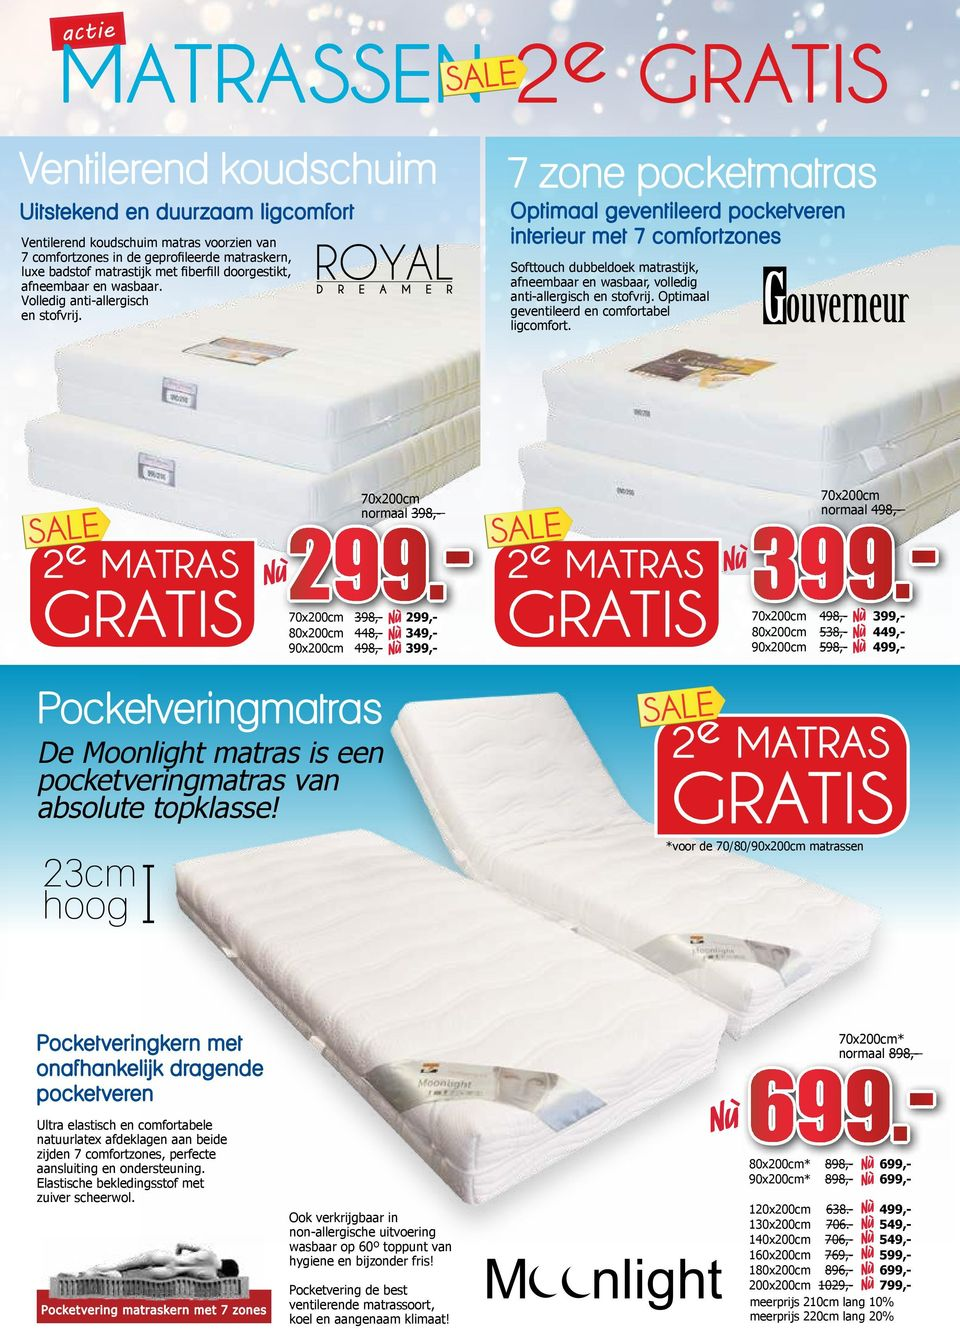 ROYAL D R E A M E R 7 zone pocketmatras Optimaal geventileerd pocketveren interieur met 7 comfortzones Softtouch dubbeldoek matrastijk, afneembaar en wasbaar, volledig anti-allergisch en stofvrij.